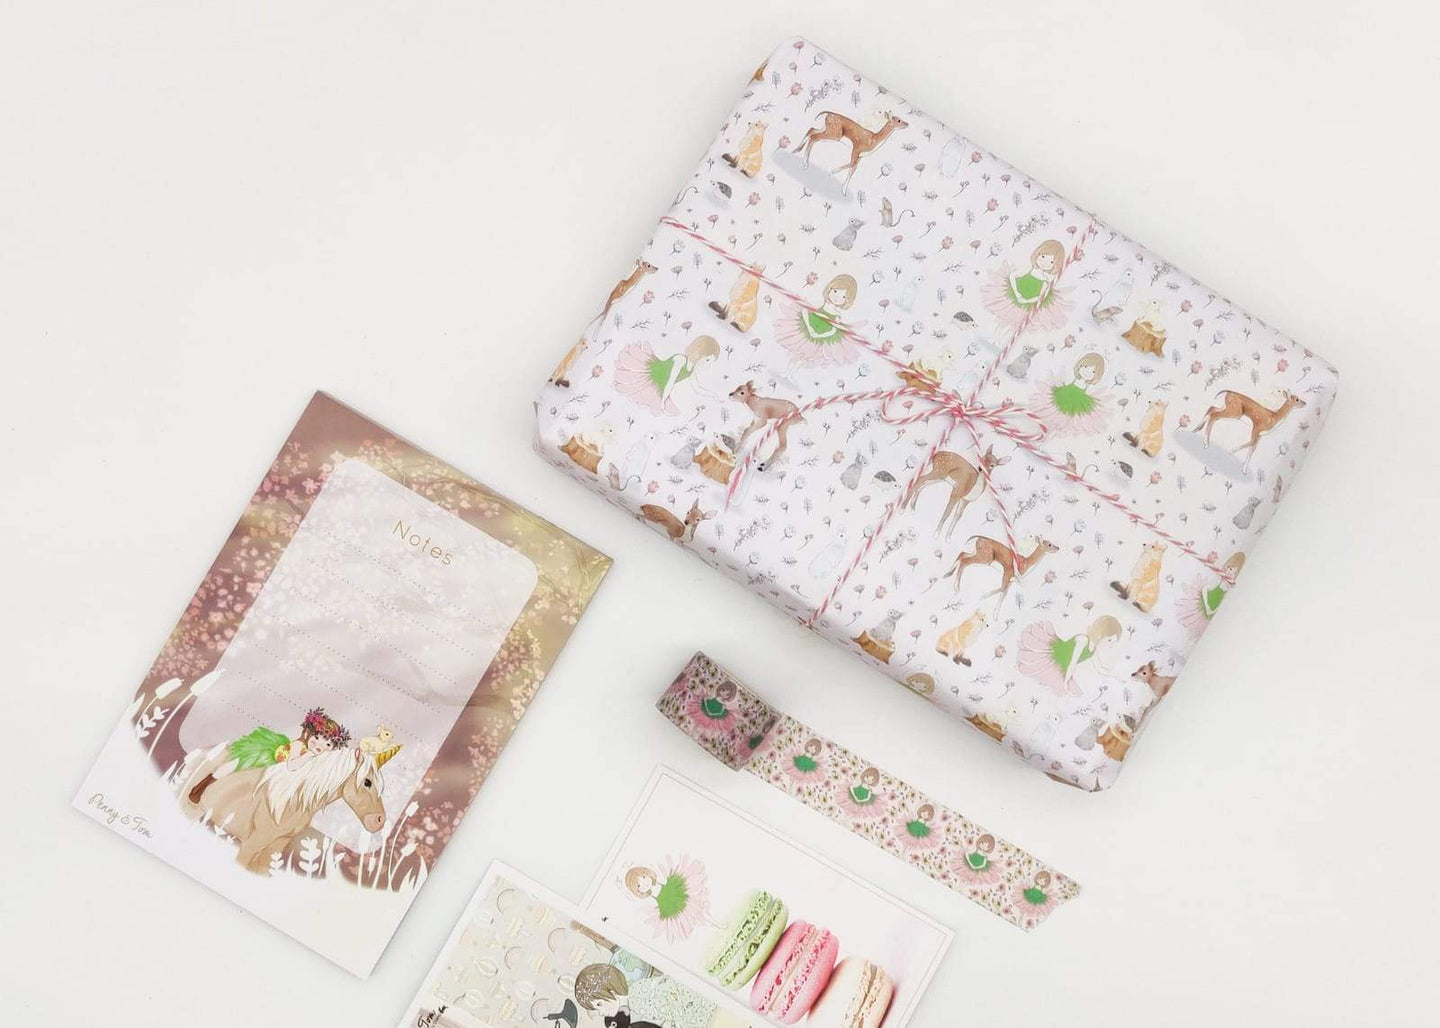 washi tape, wrapping paper, sandwich wrapping paper, notepad